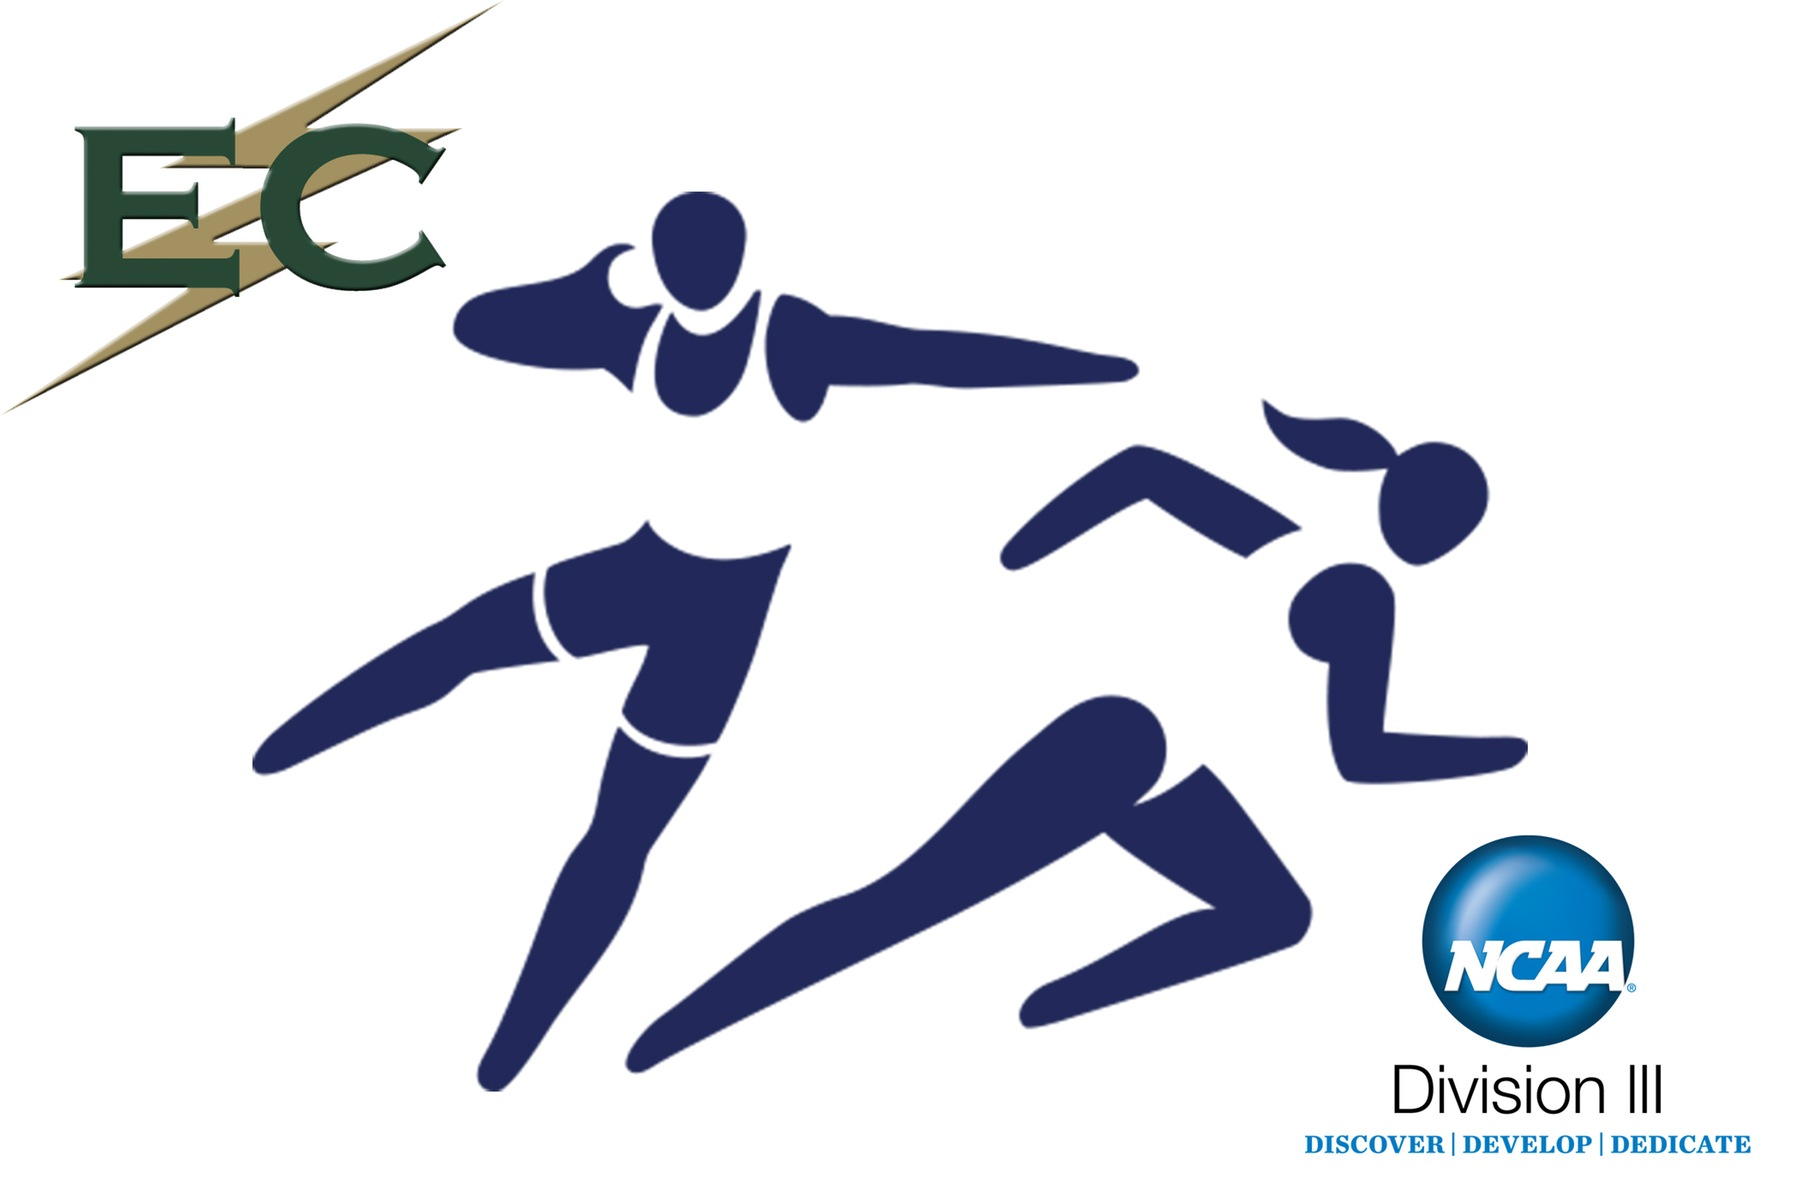 Elms College Adds Men's and Women's Track for 2016-17